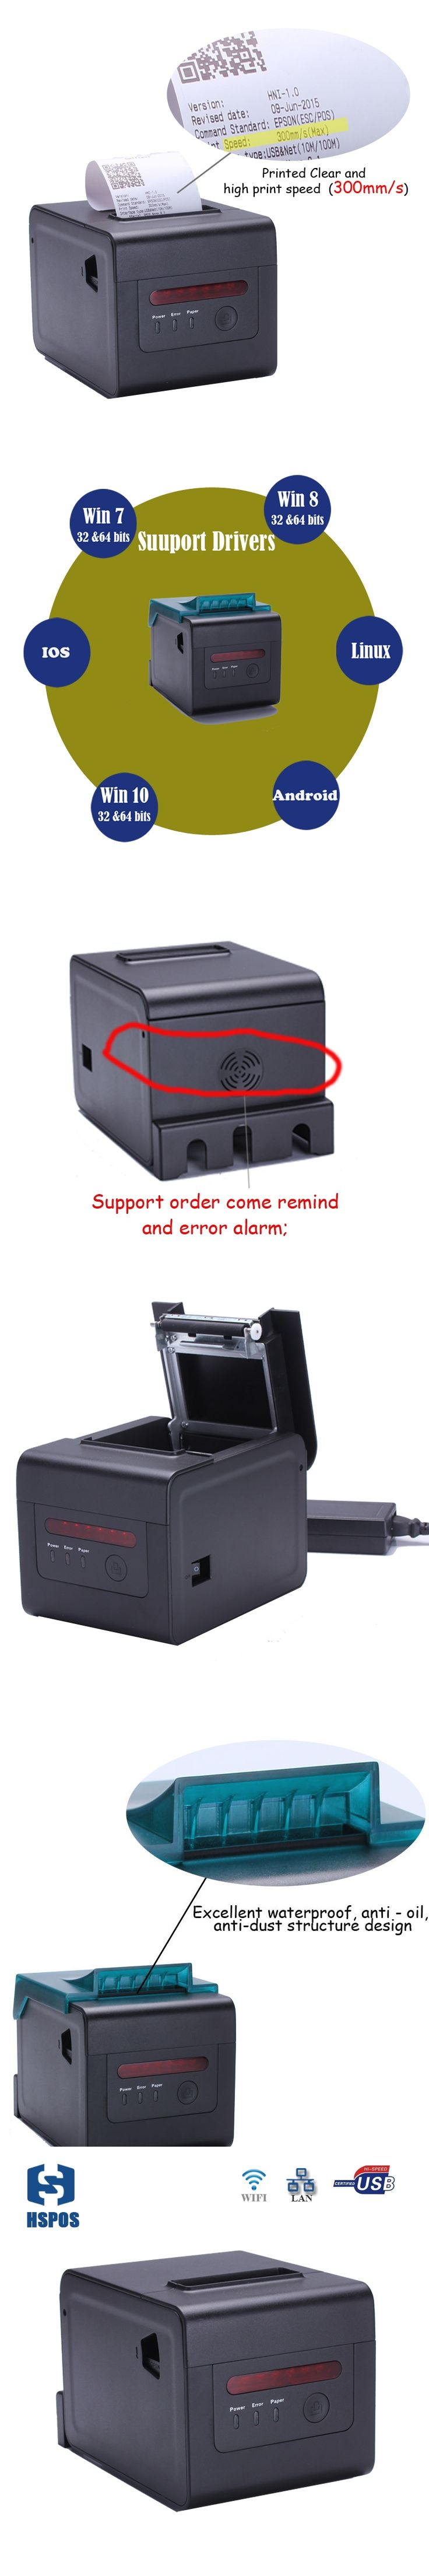 High quality rj45 thermal printer with cutter and buzzer impresora wifi 58mm 80mm pos receipt printer multifunctional device